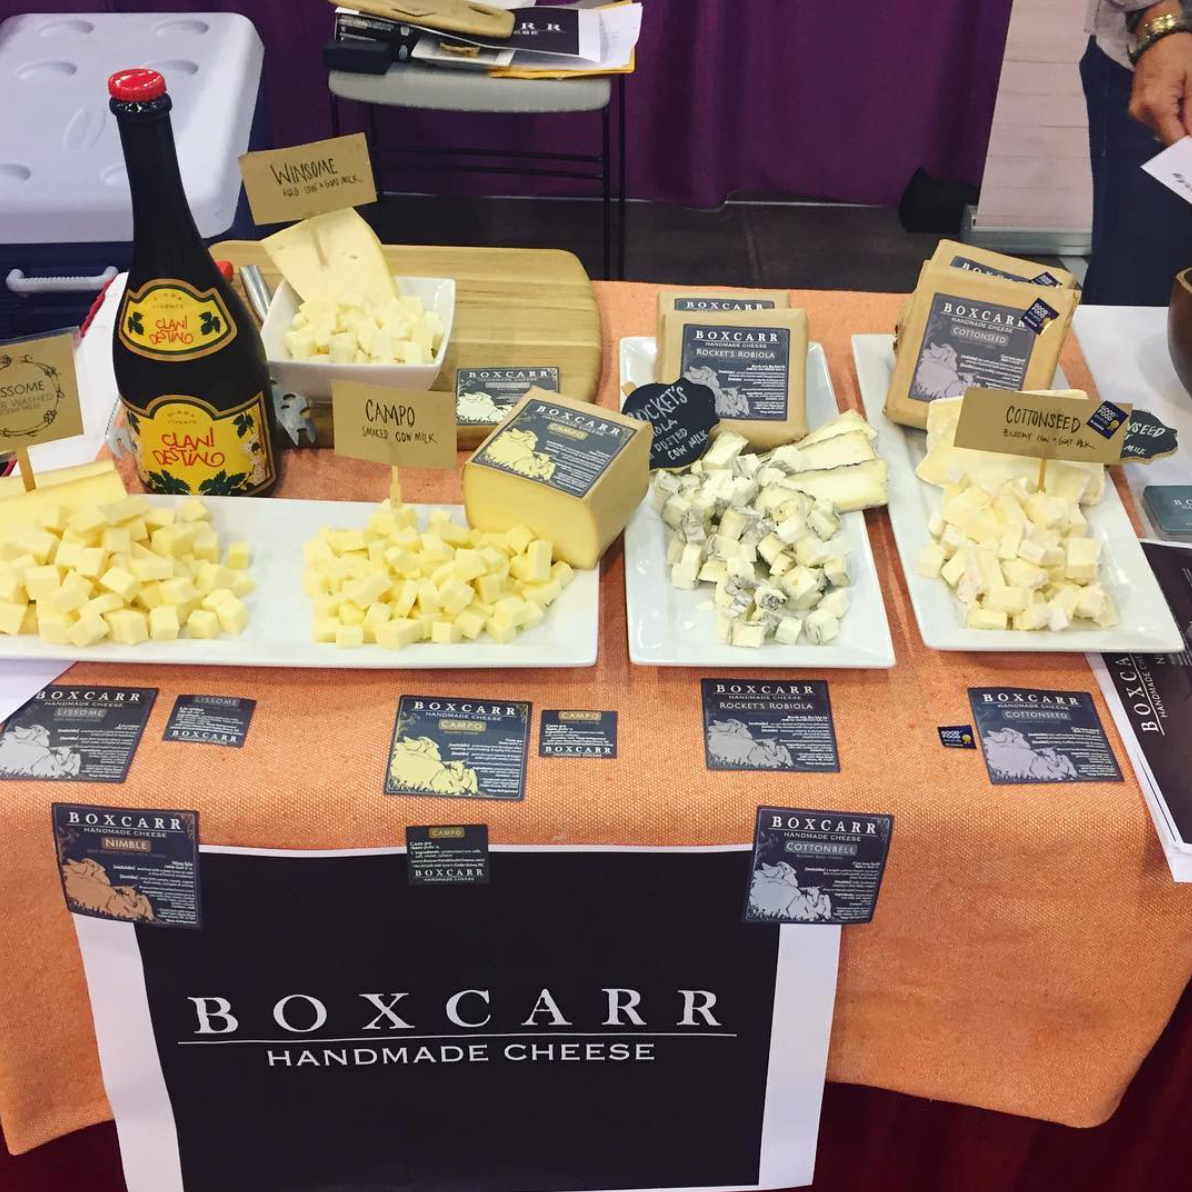 Boxcarr Handmade Cheese